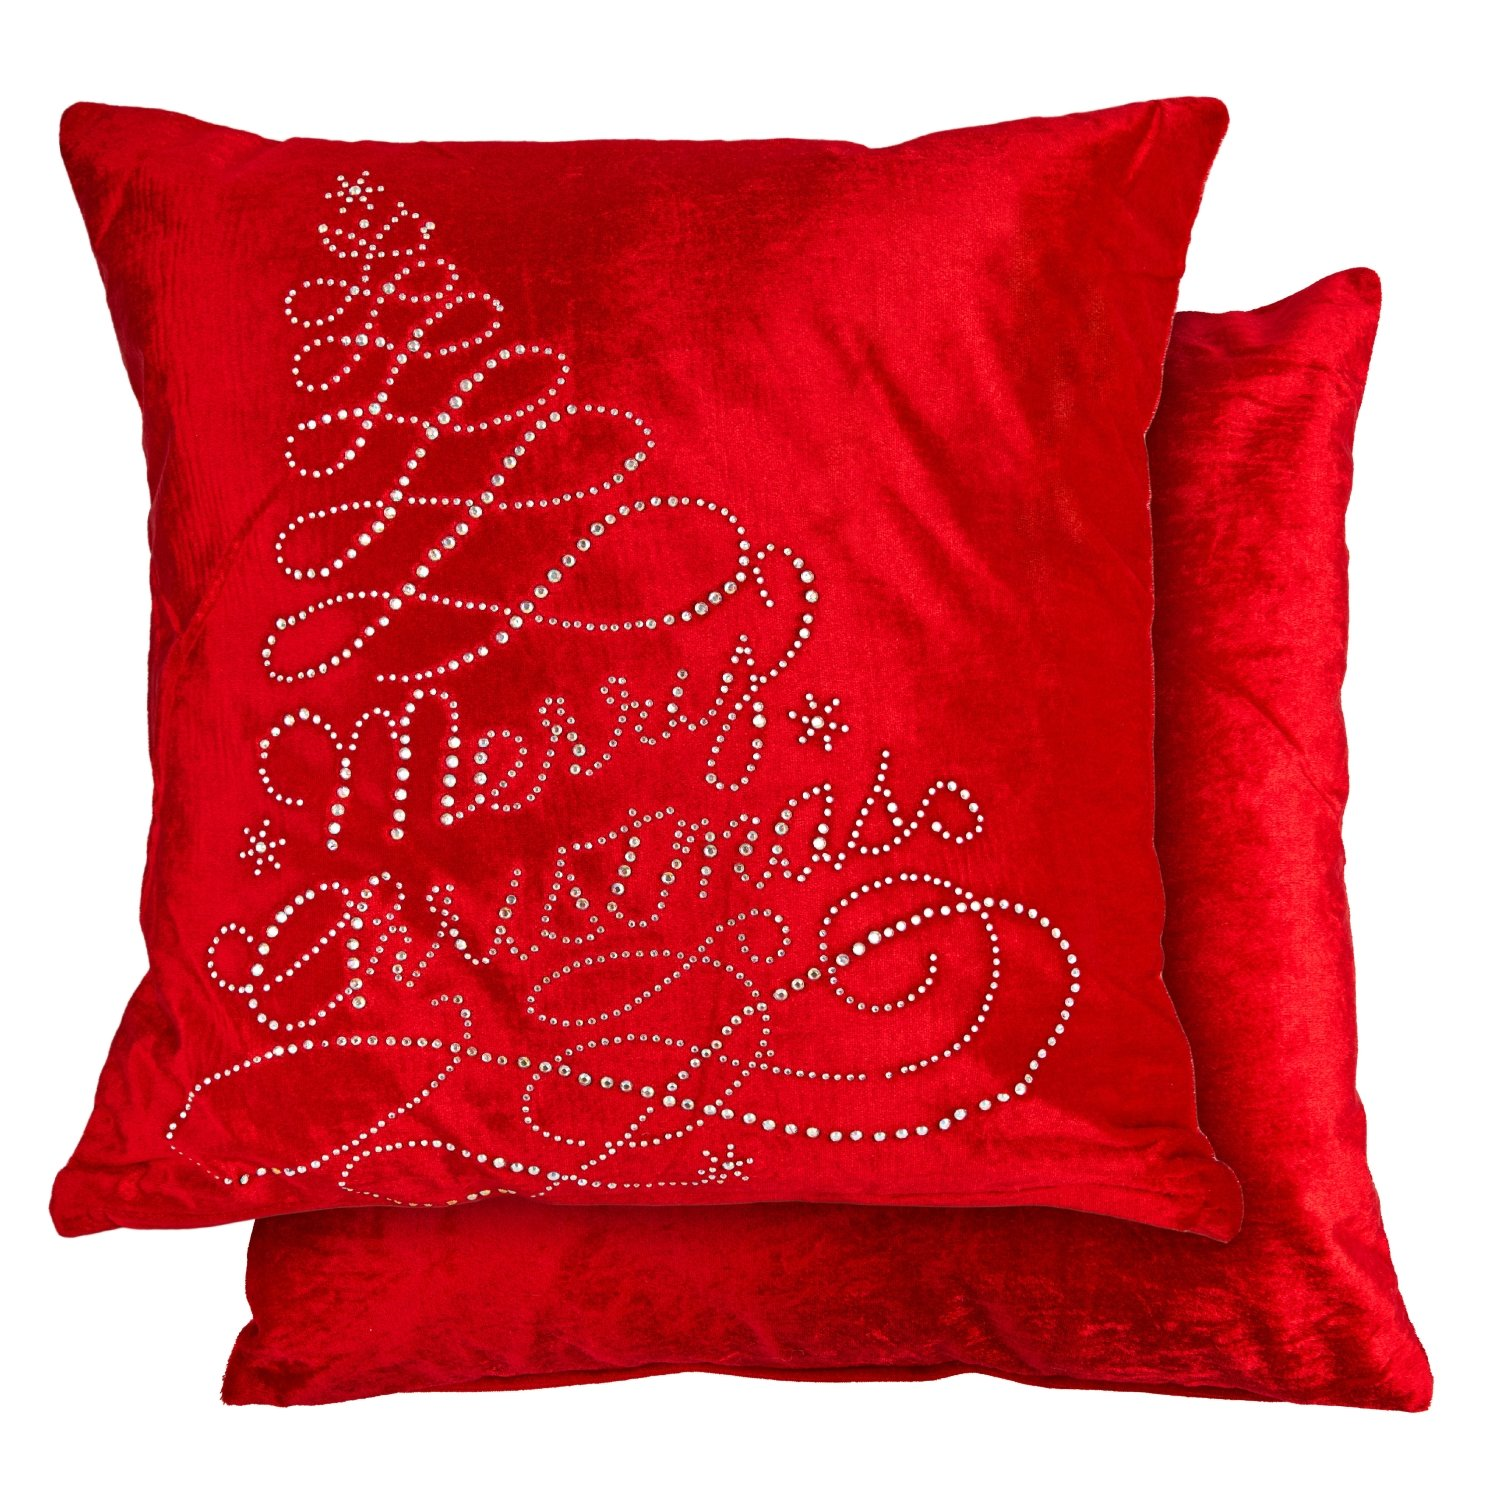 Twinkles Christmas Cushion Cover In Red Homefords